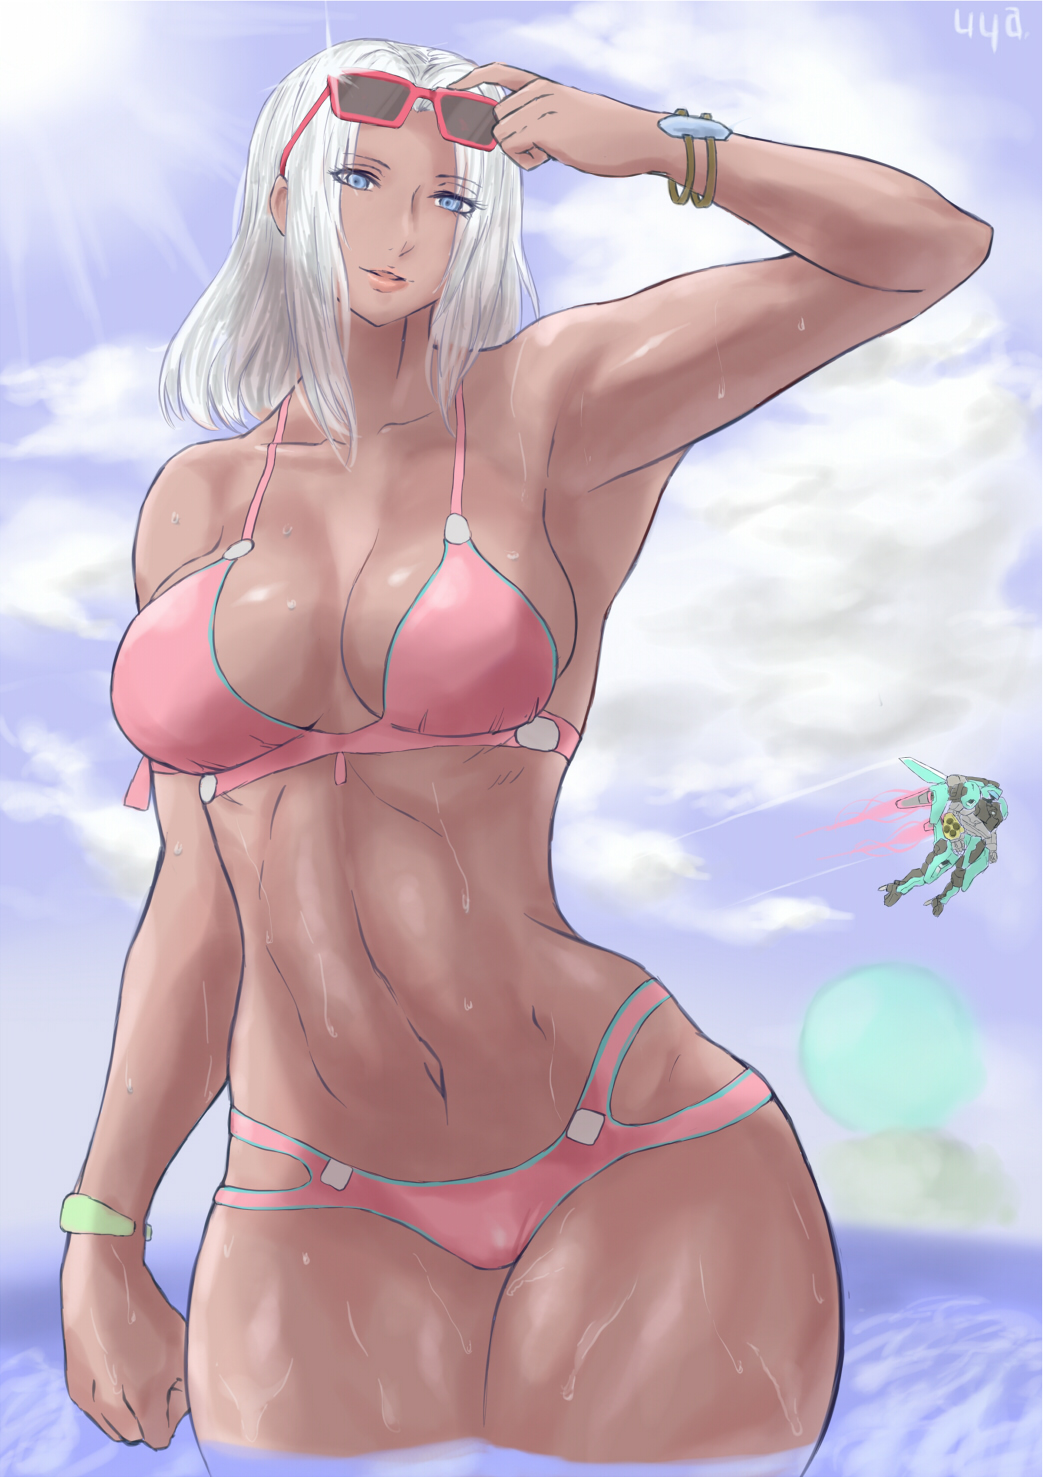 chronicles dahlia xenoblade hentai 2 There are no rules gif